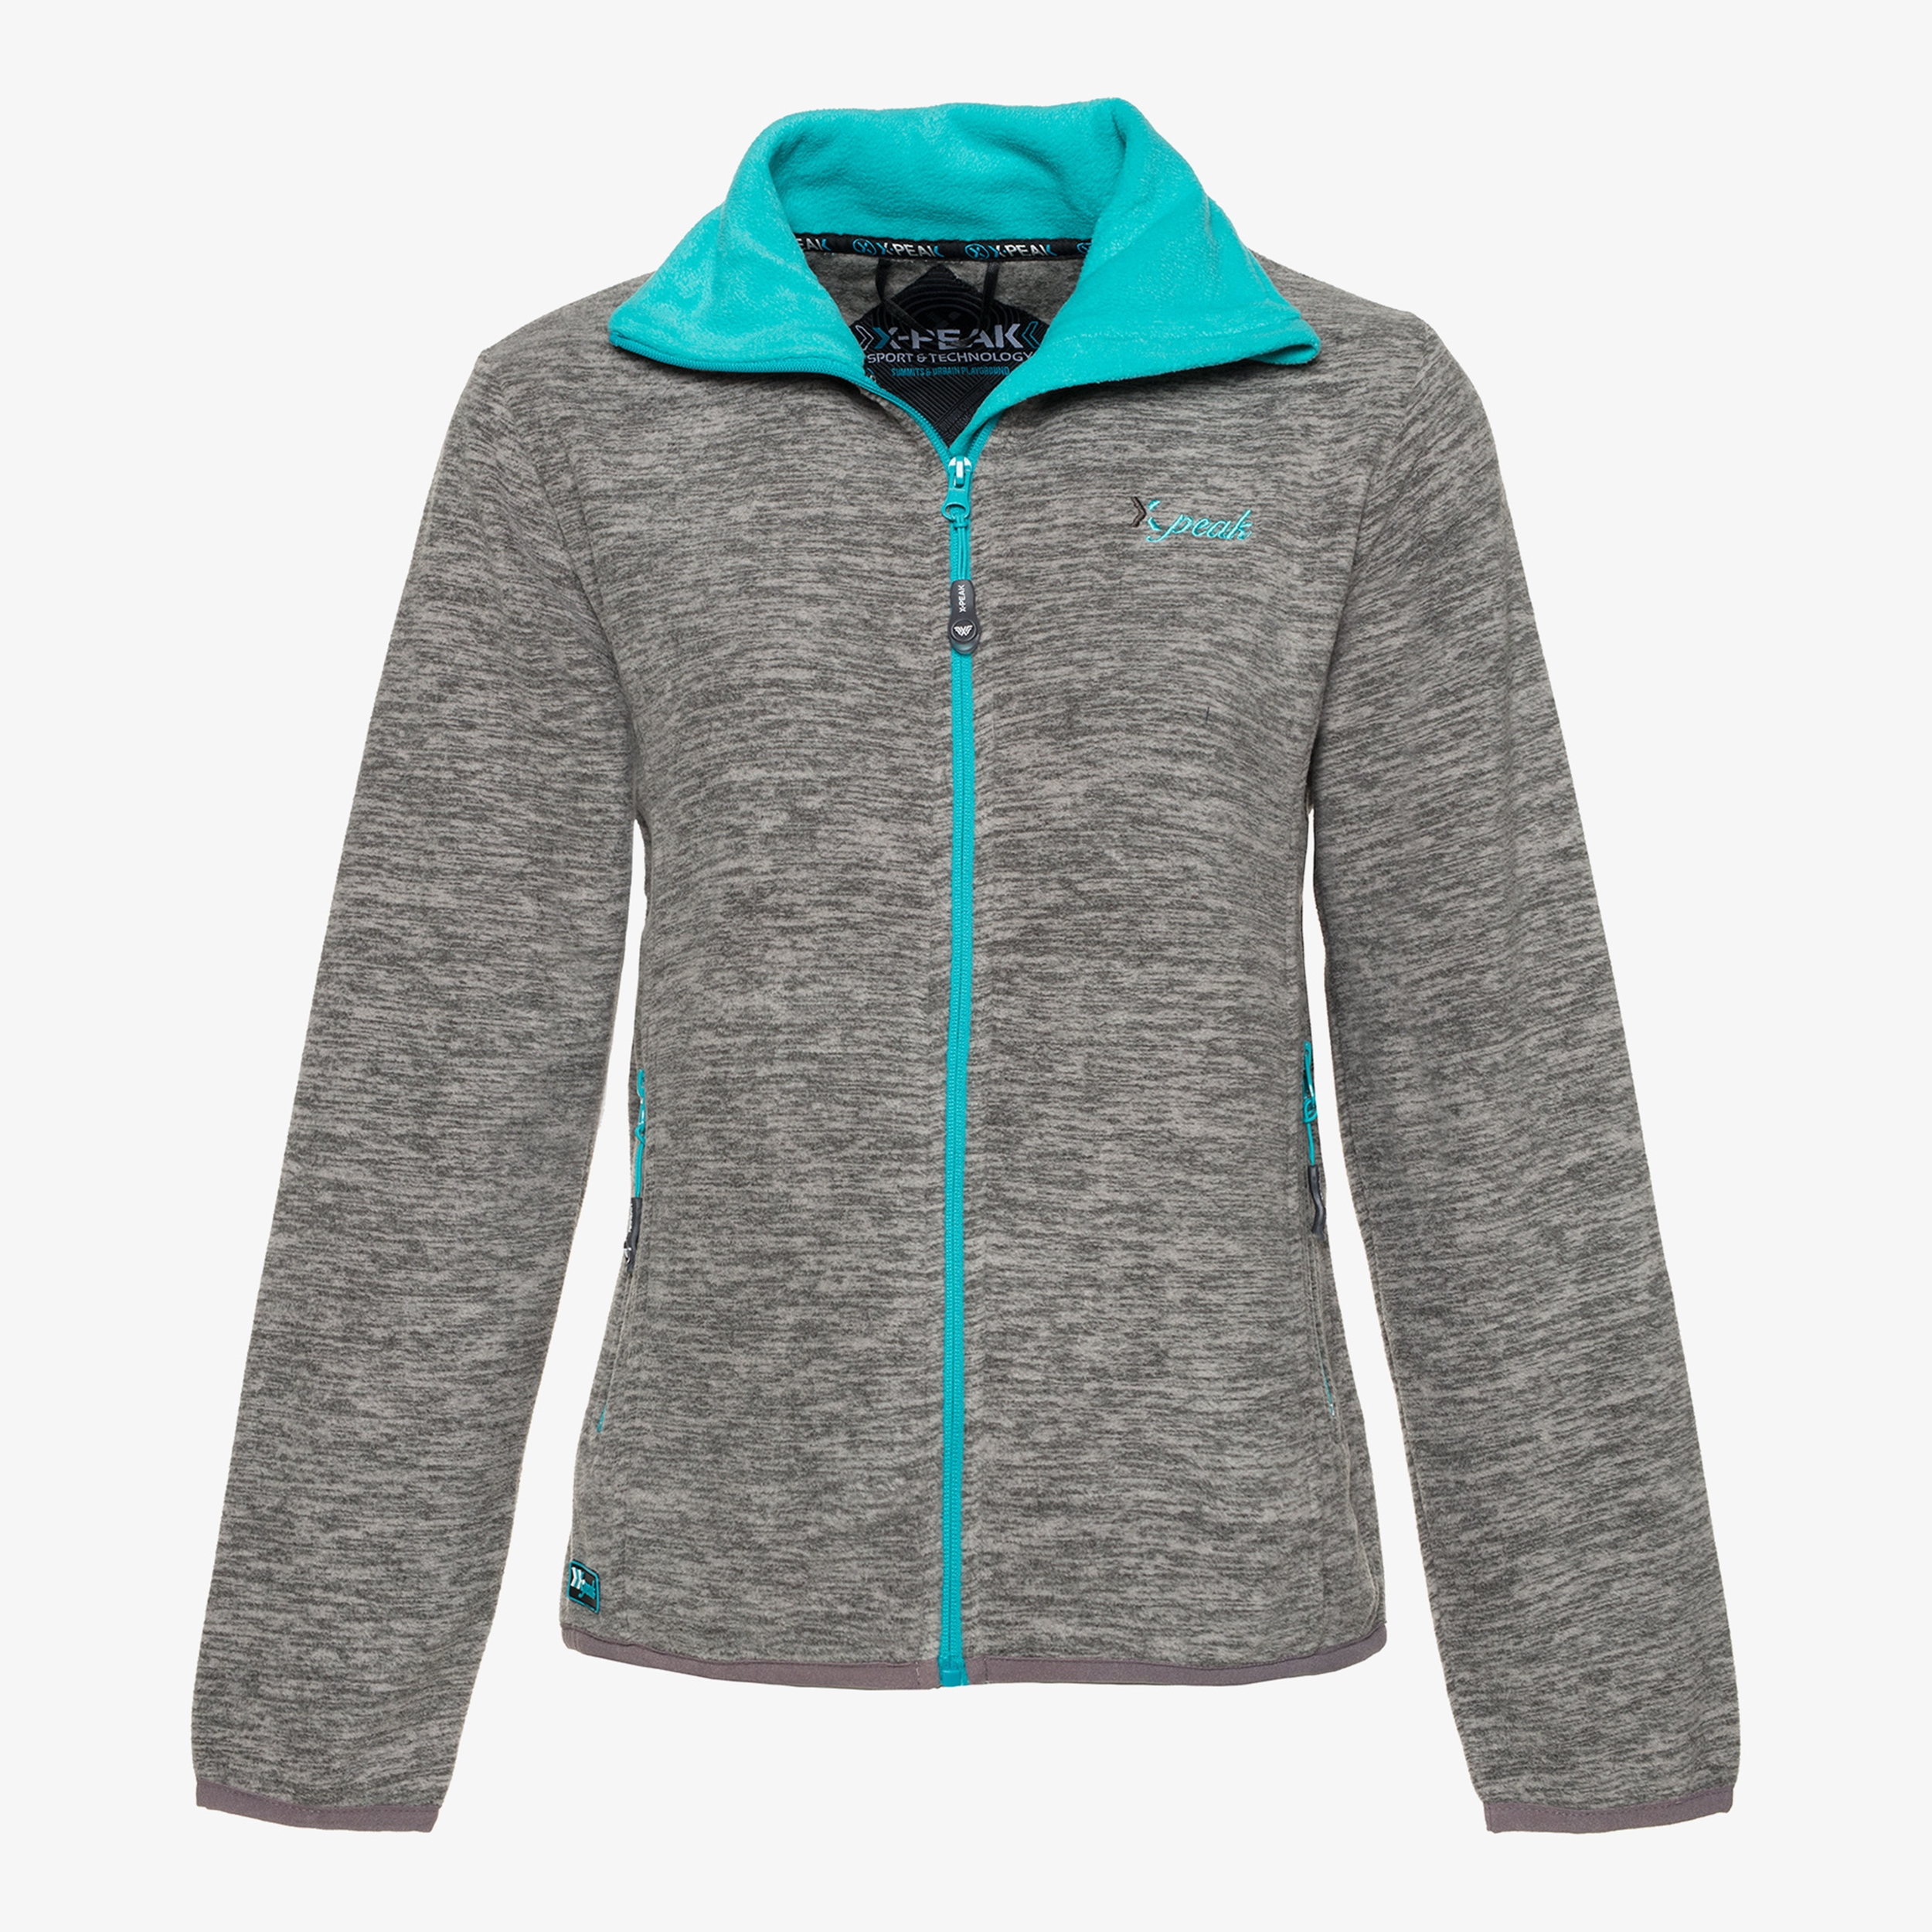 X Peak dames outdoor fleece vest online bestellen | Scapino